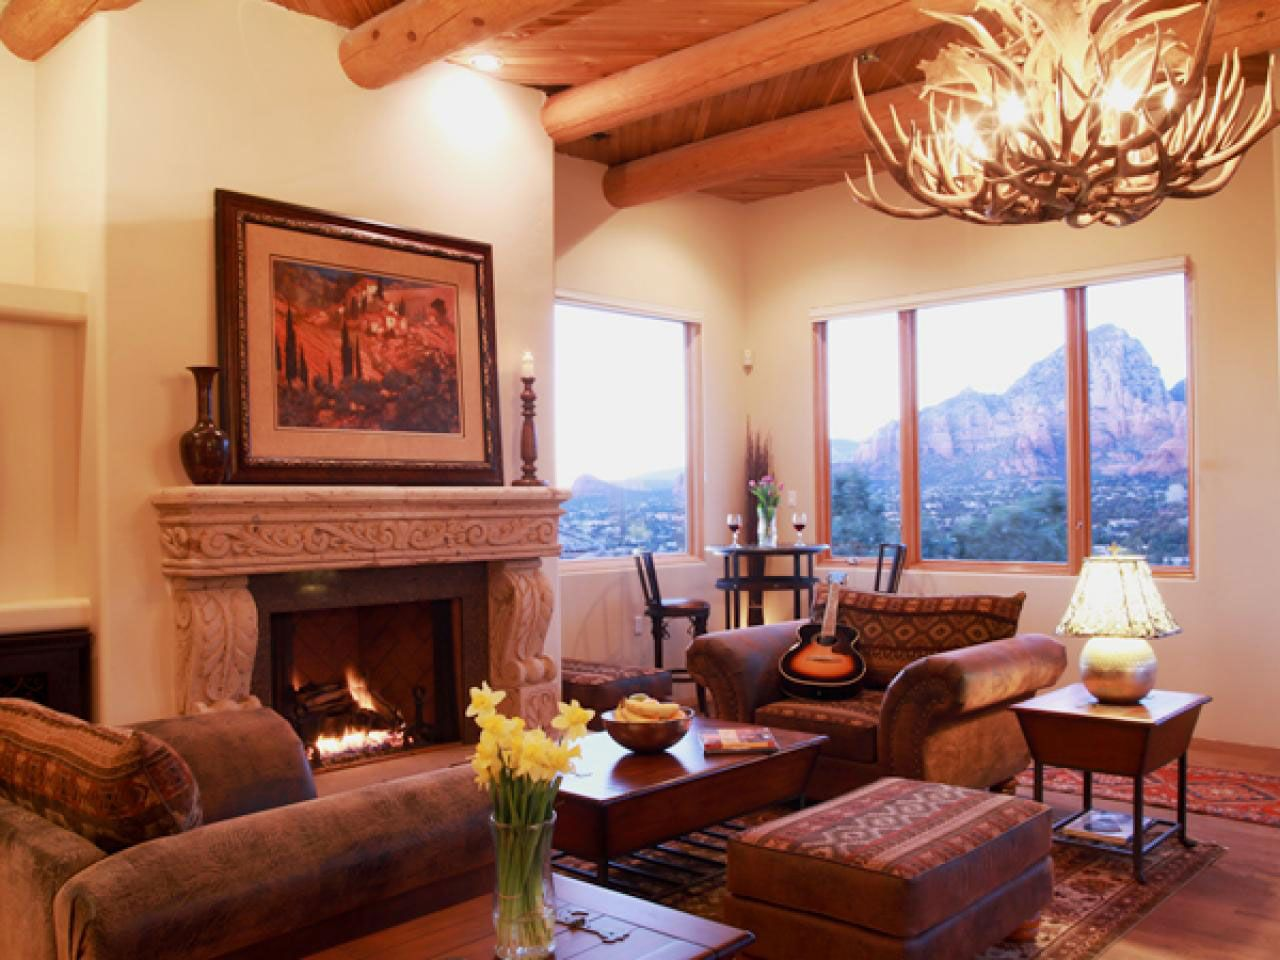 Southwestern Interior Design, Style And Decorating Ideas | Classic ...